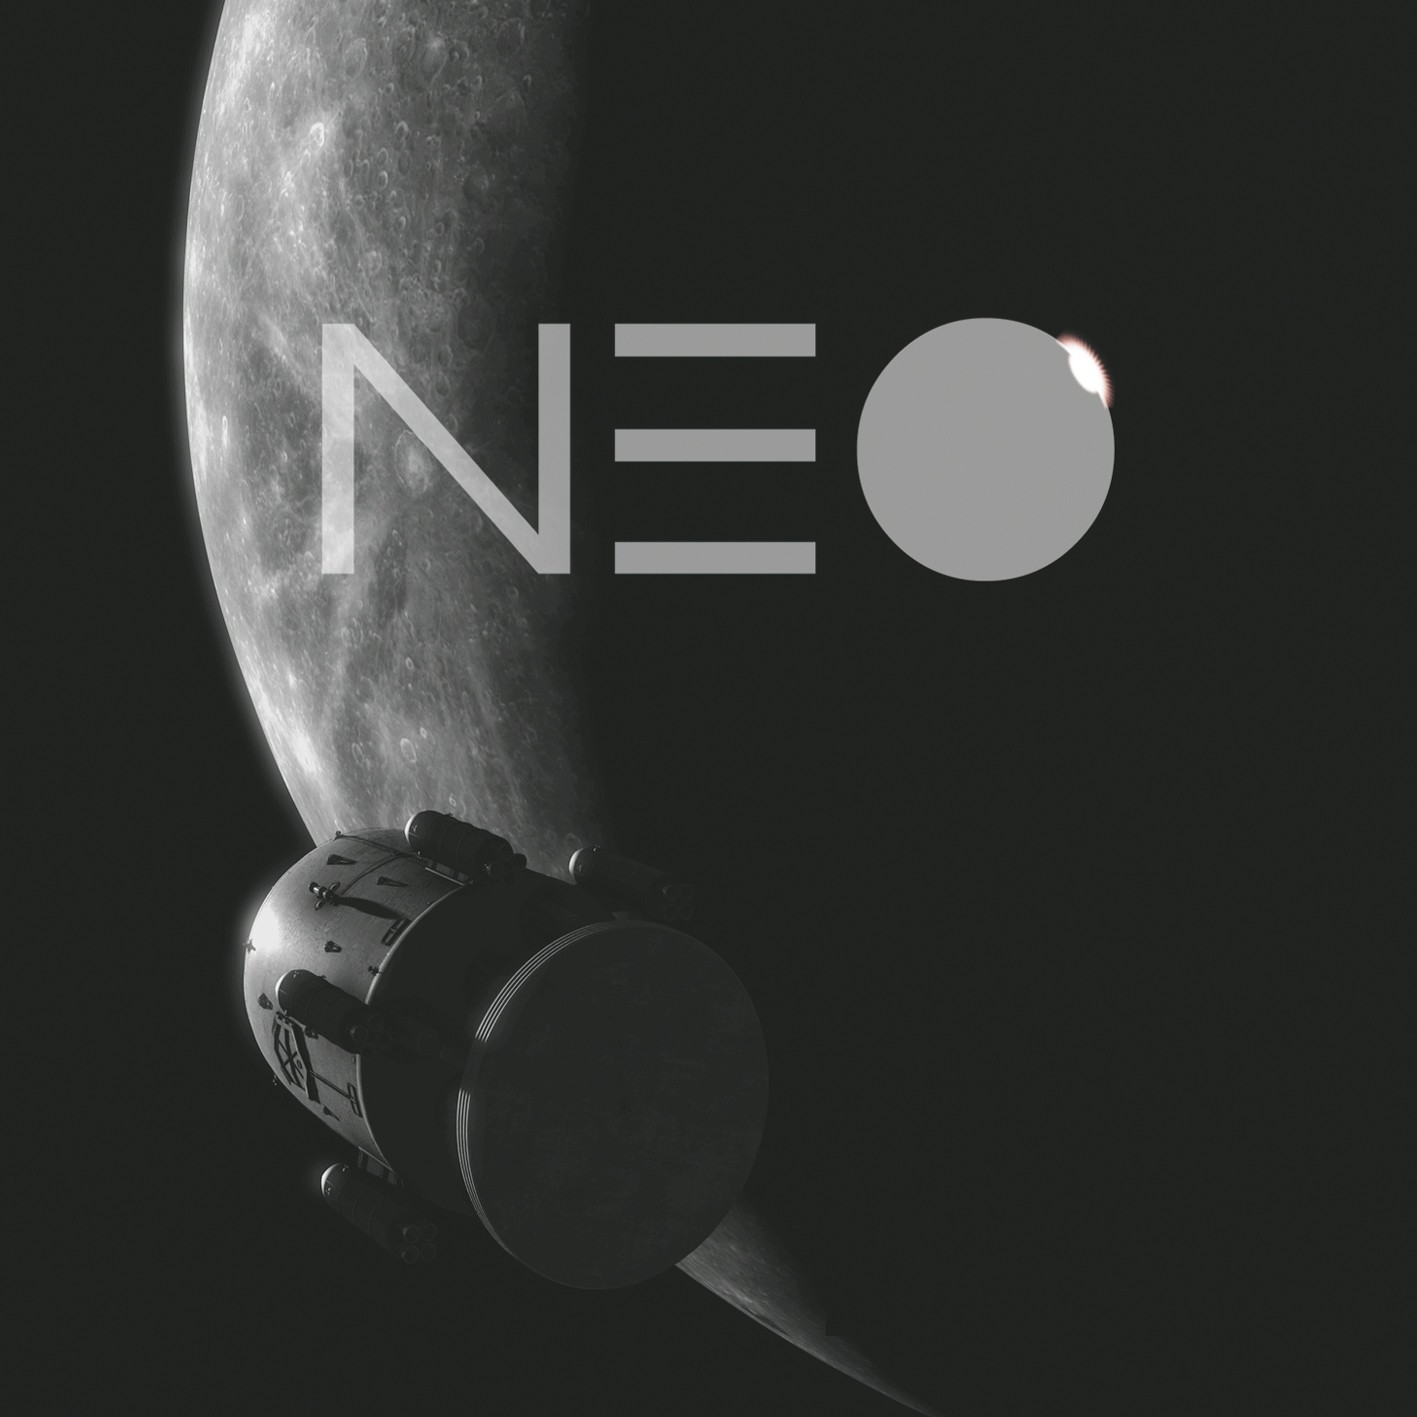 N E O (Near Earth Orbit) - End Of All Existence (reworked 2020) - CD